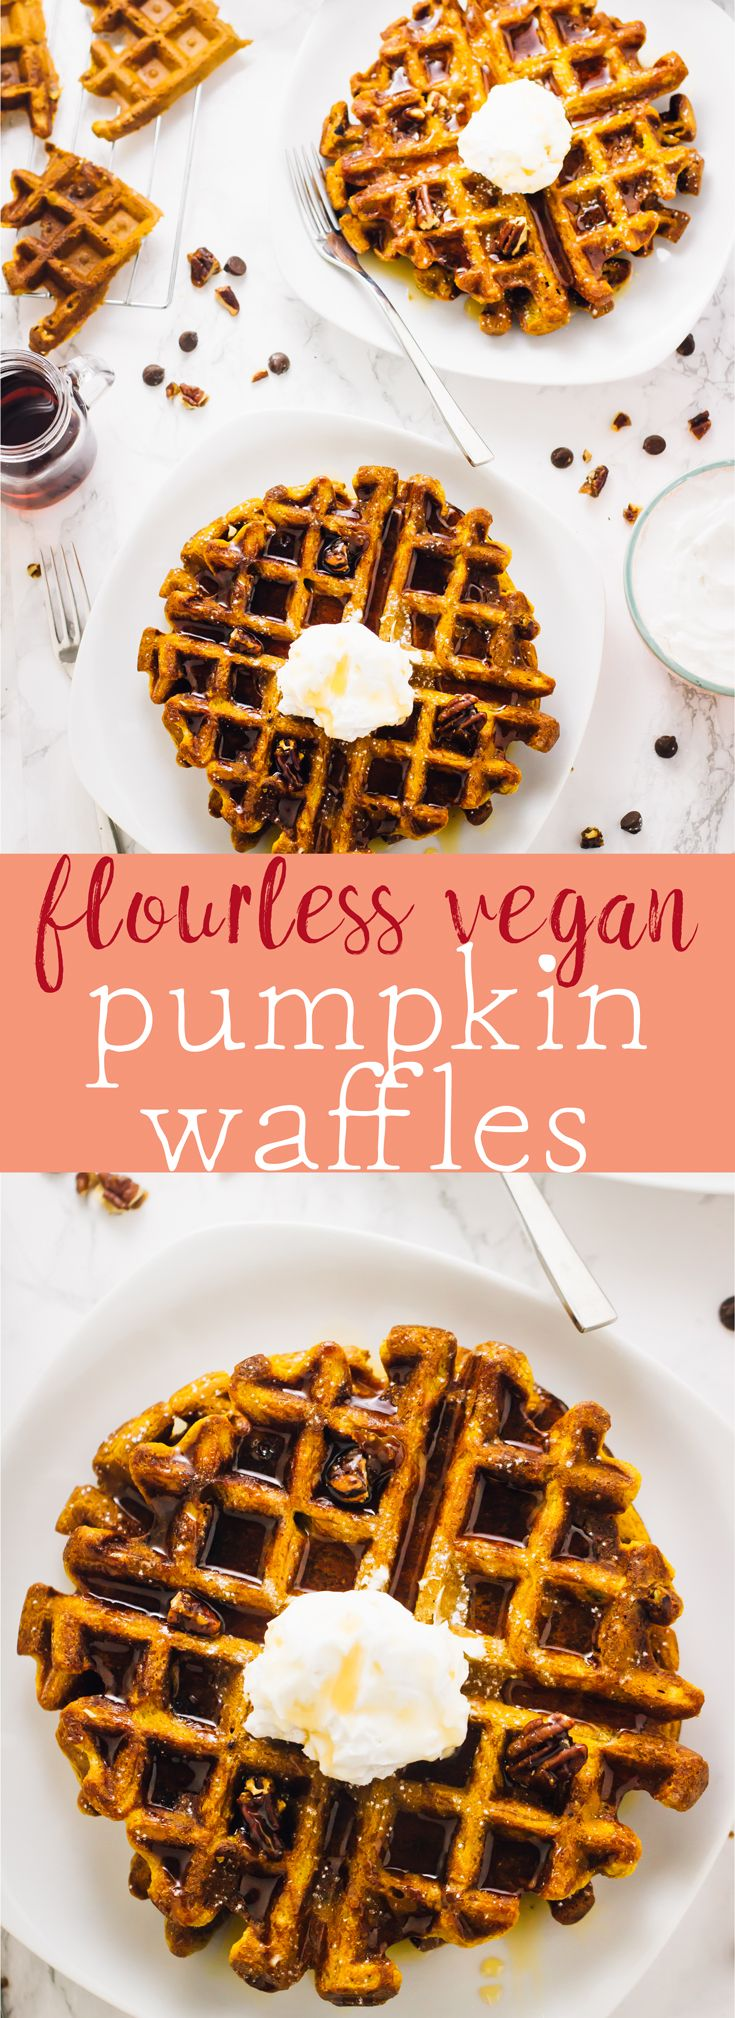 These Flourless Vegan Pumpkin Waffles are a tried and true waffle recipe. They're loaded with delicious pumpkin flavour, are freezer-friendly and are so easy to make! via http://jessicainthekitchen.com